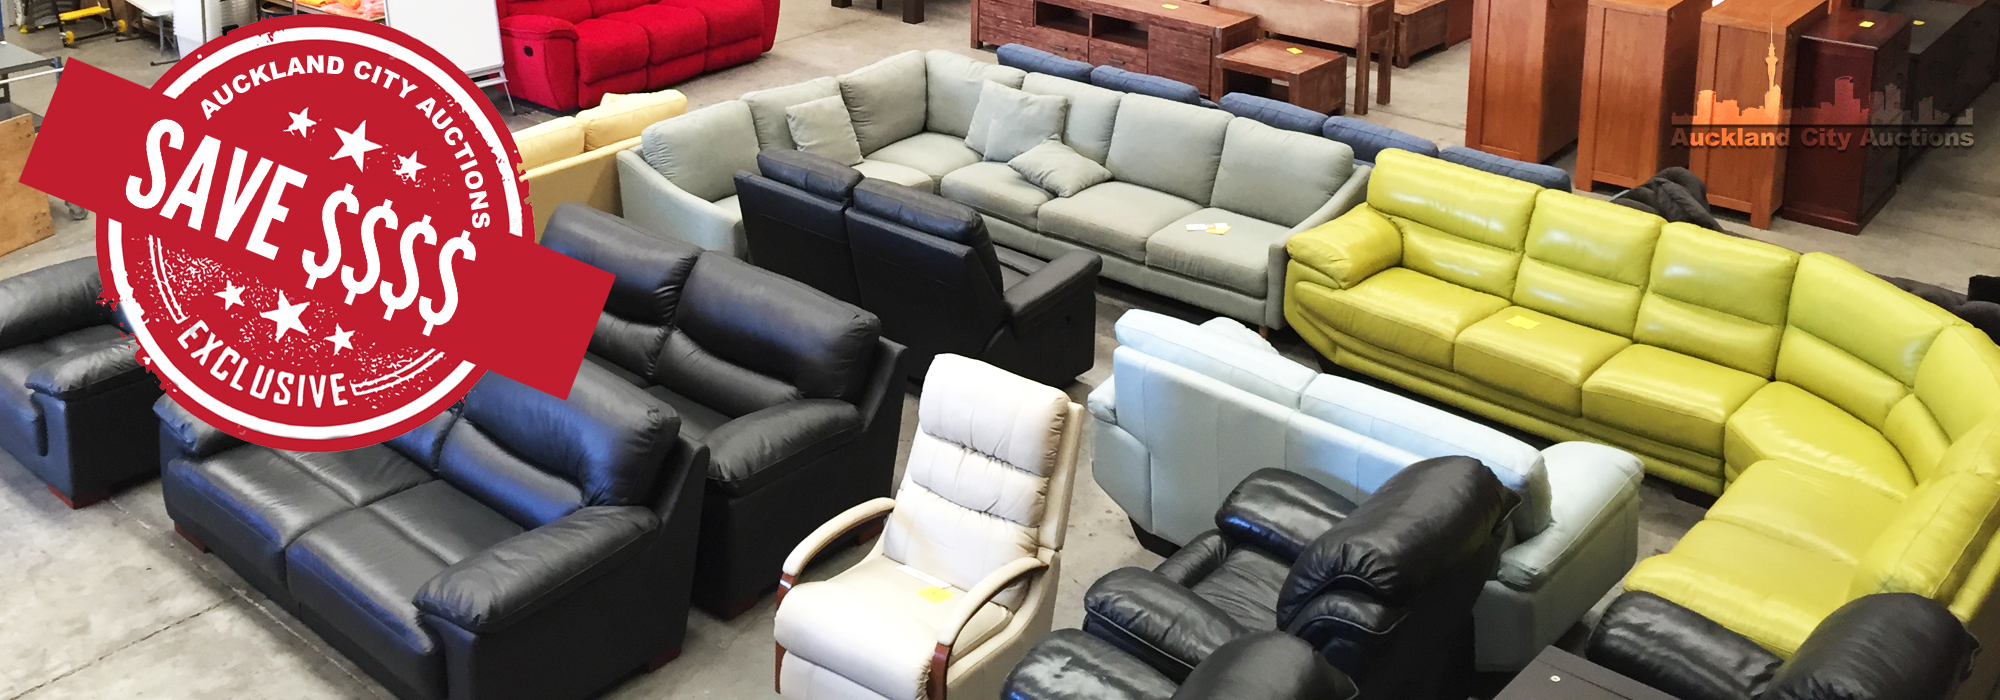 Marvelous Auckland City Auctions Quality Furniture At Very Low Prices Interior Design Ideas Tzicisoteloinfo